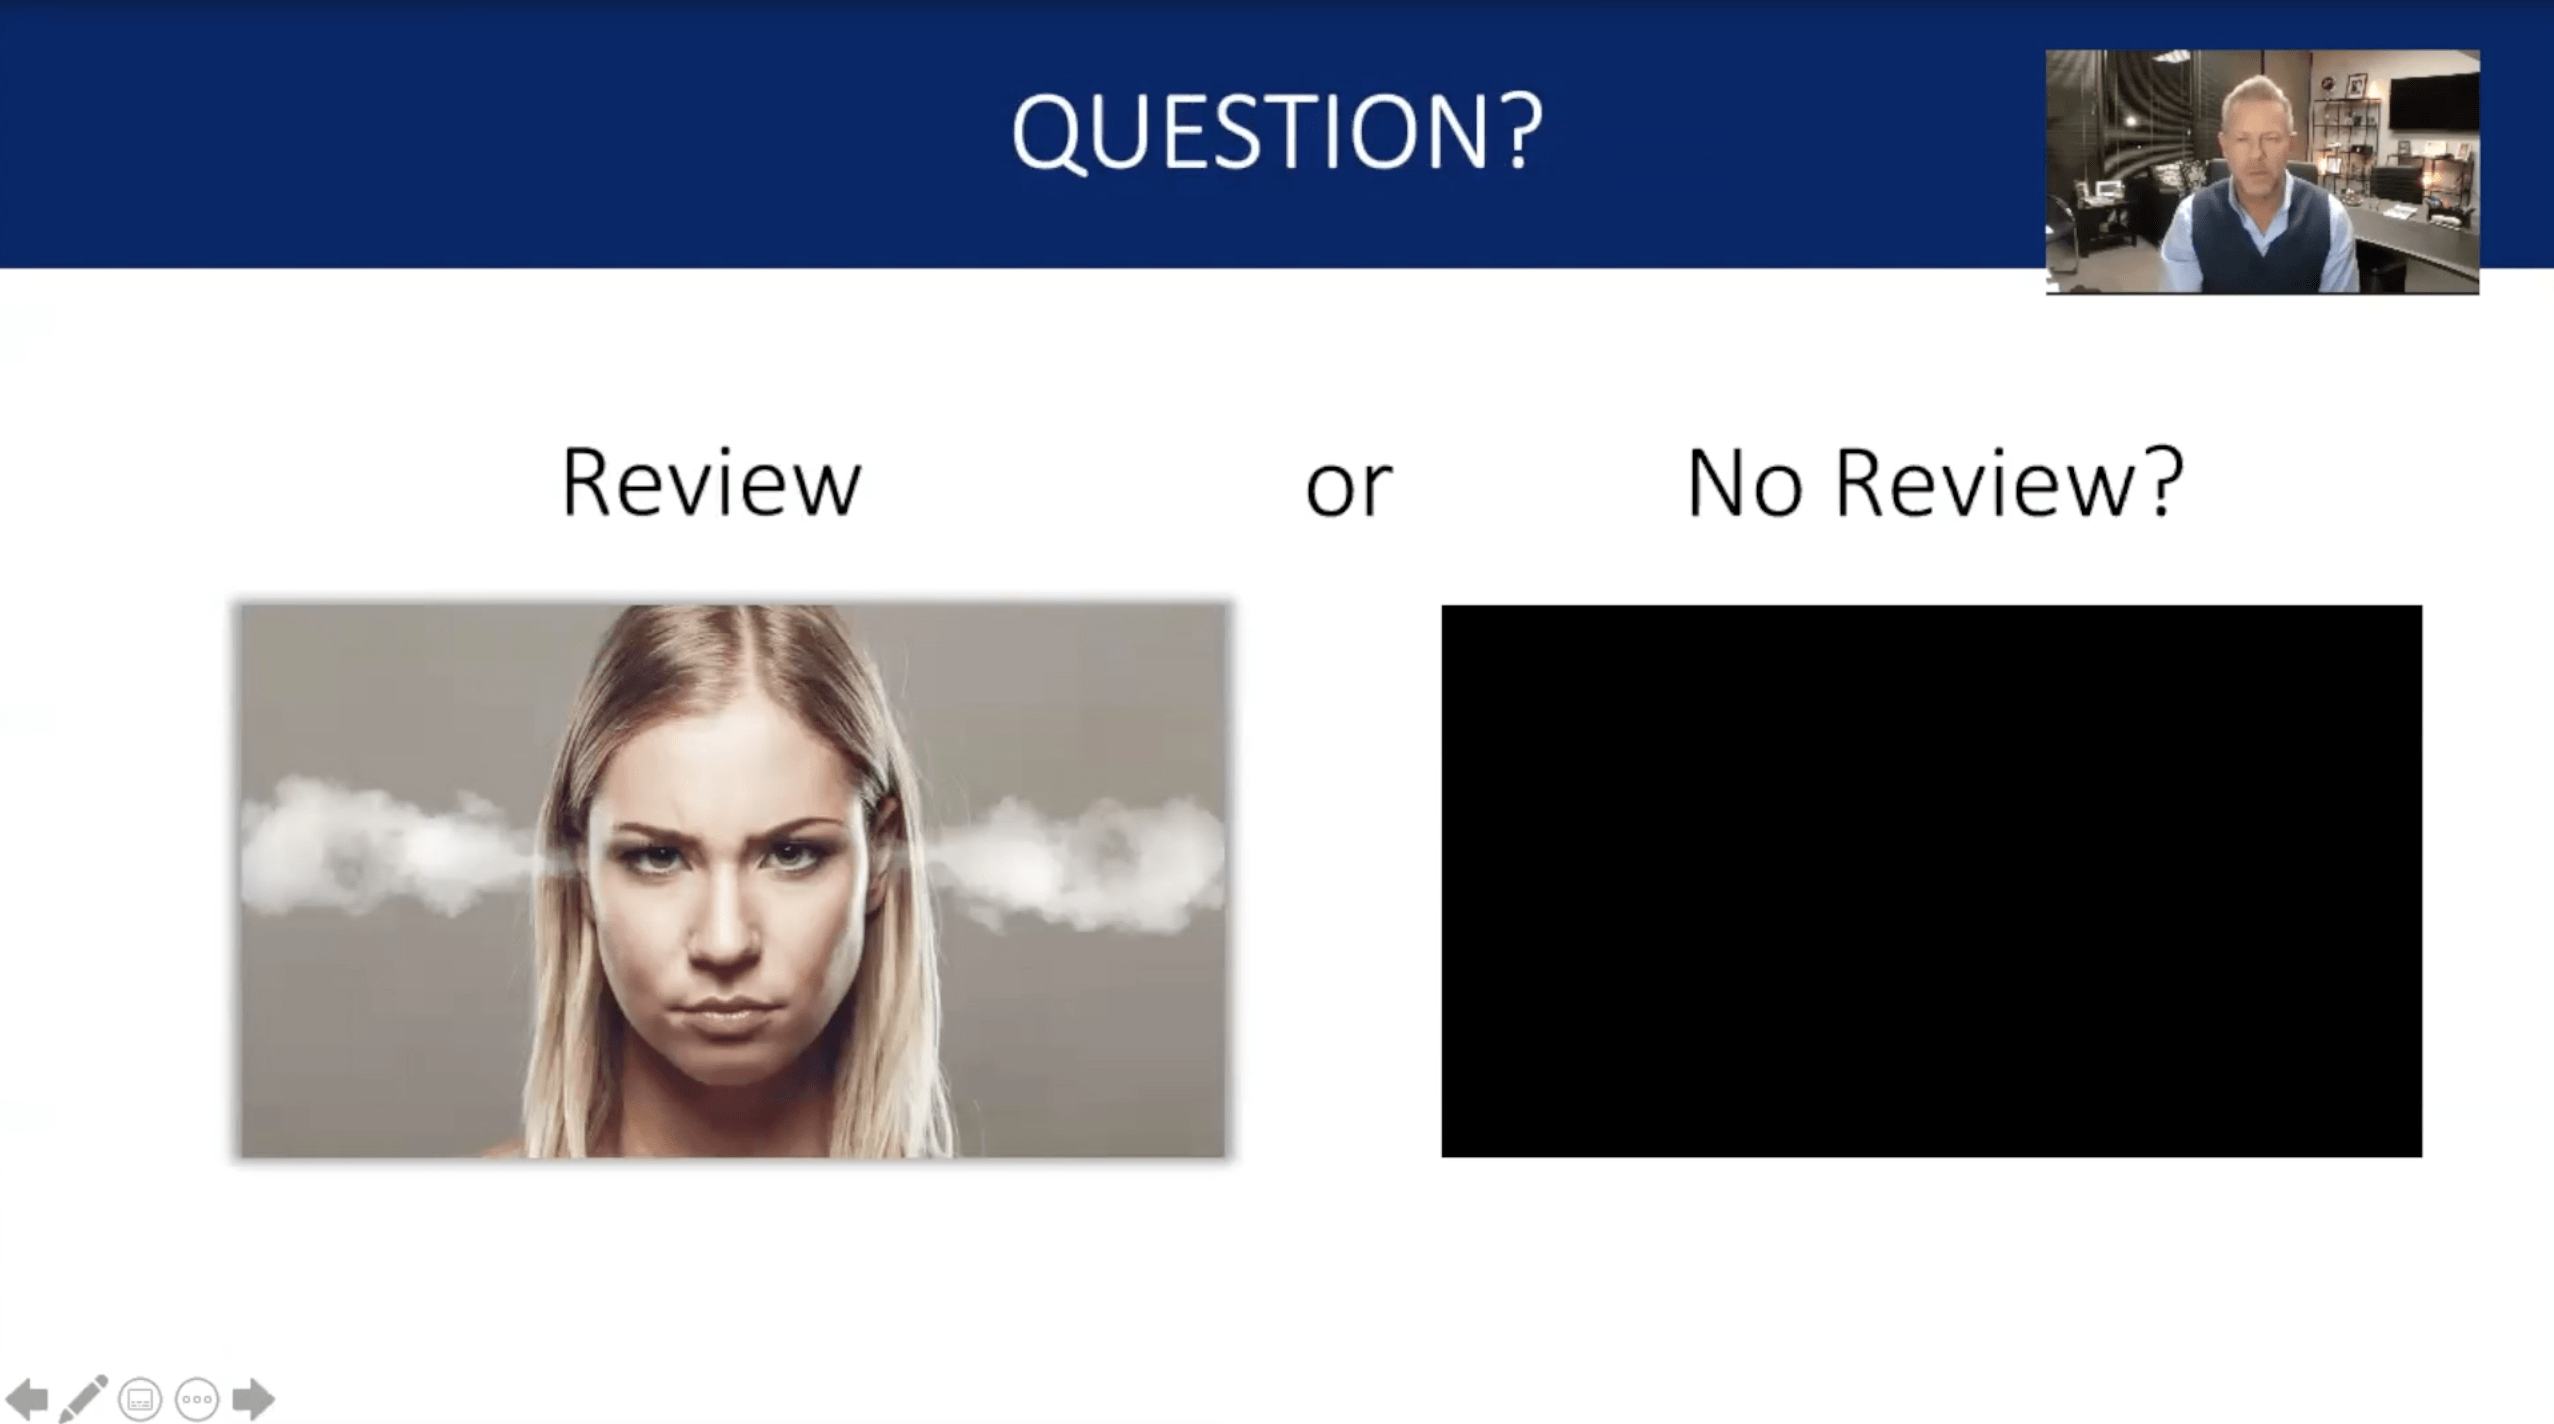 Negative Review - Review or No Review Image